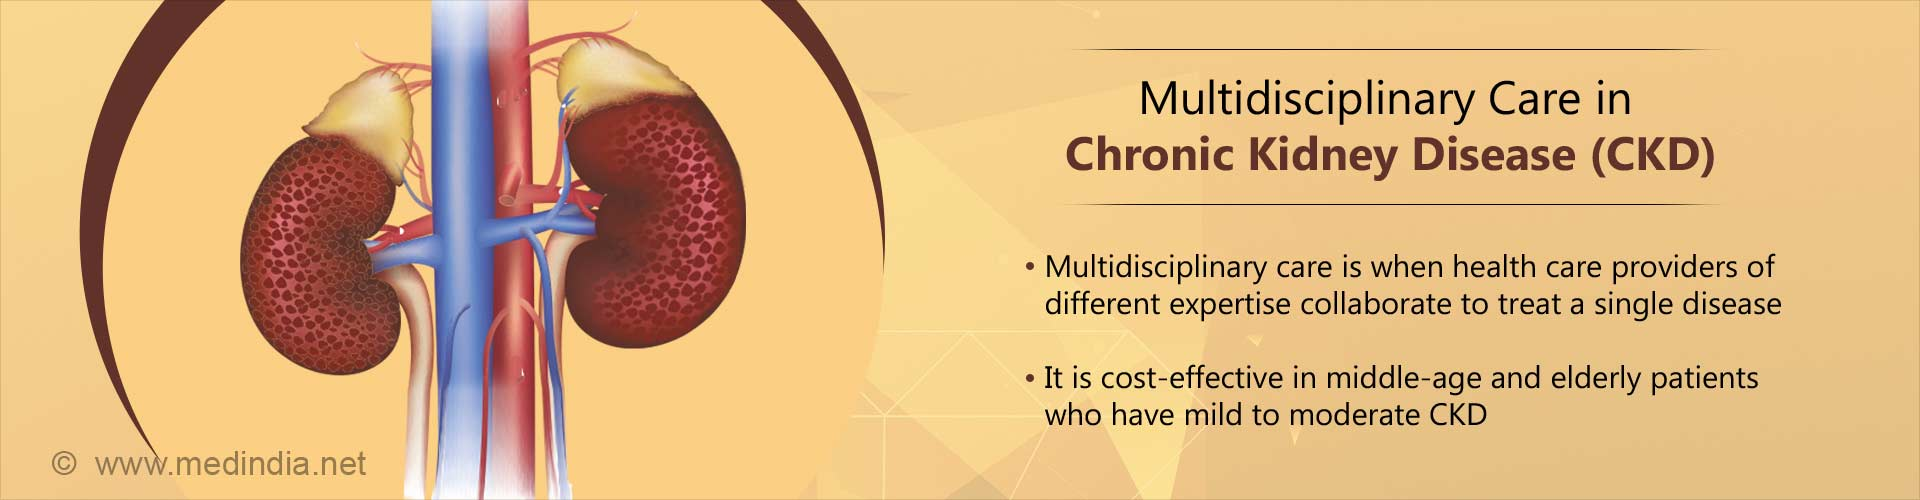 Multidisciplinary Care: Cost-effective for Chronic Kidney Disease Patients